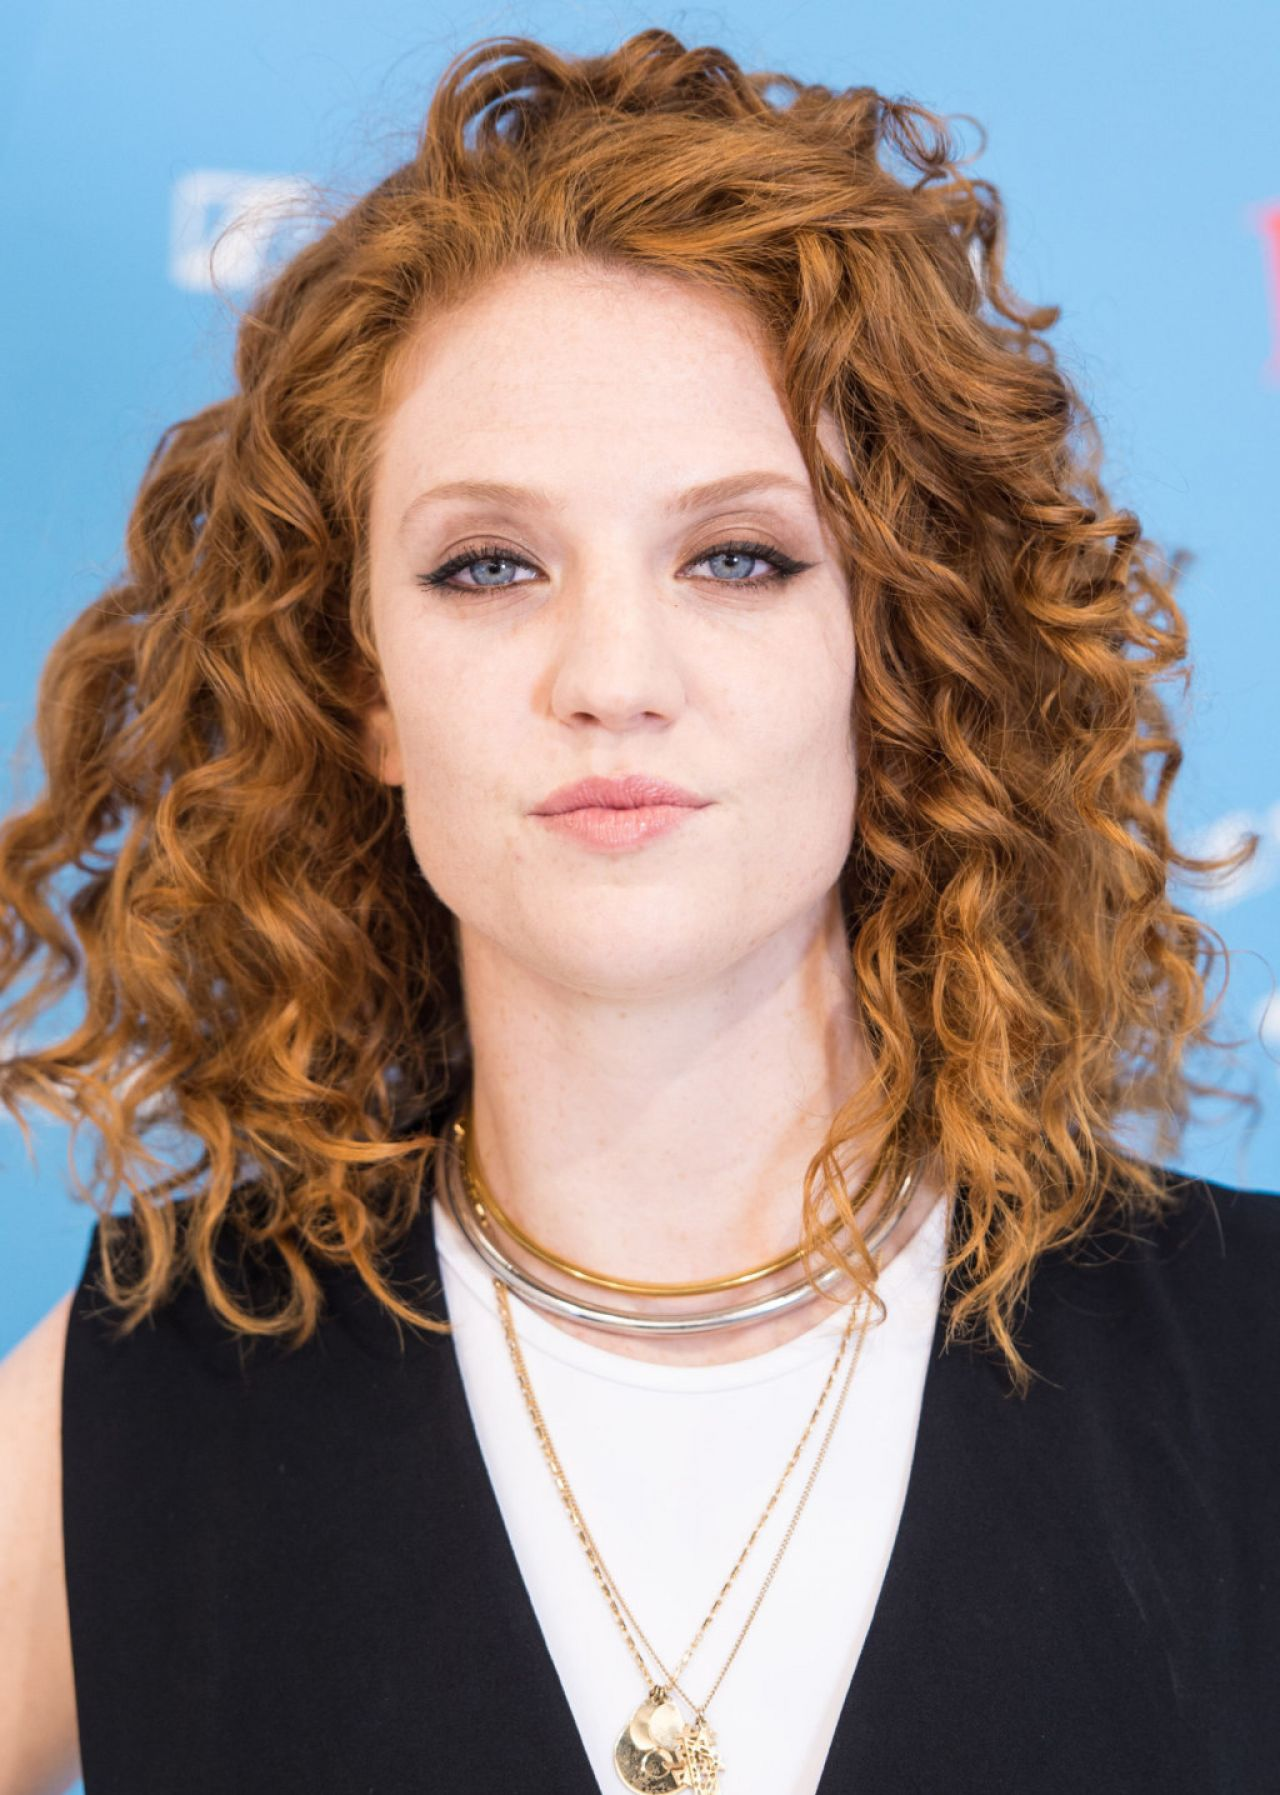 Jess Glynne Performs On Stage During A Launch For MUSIC CUBE